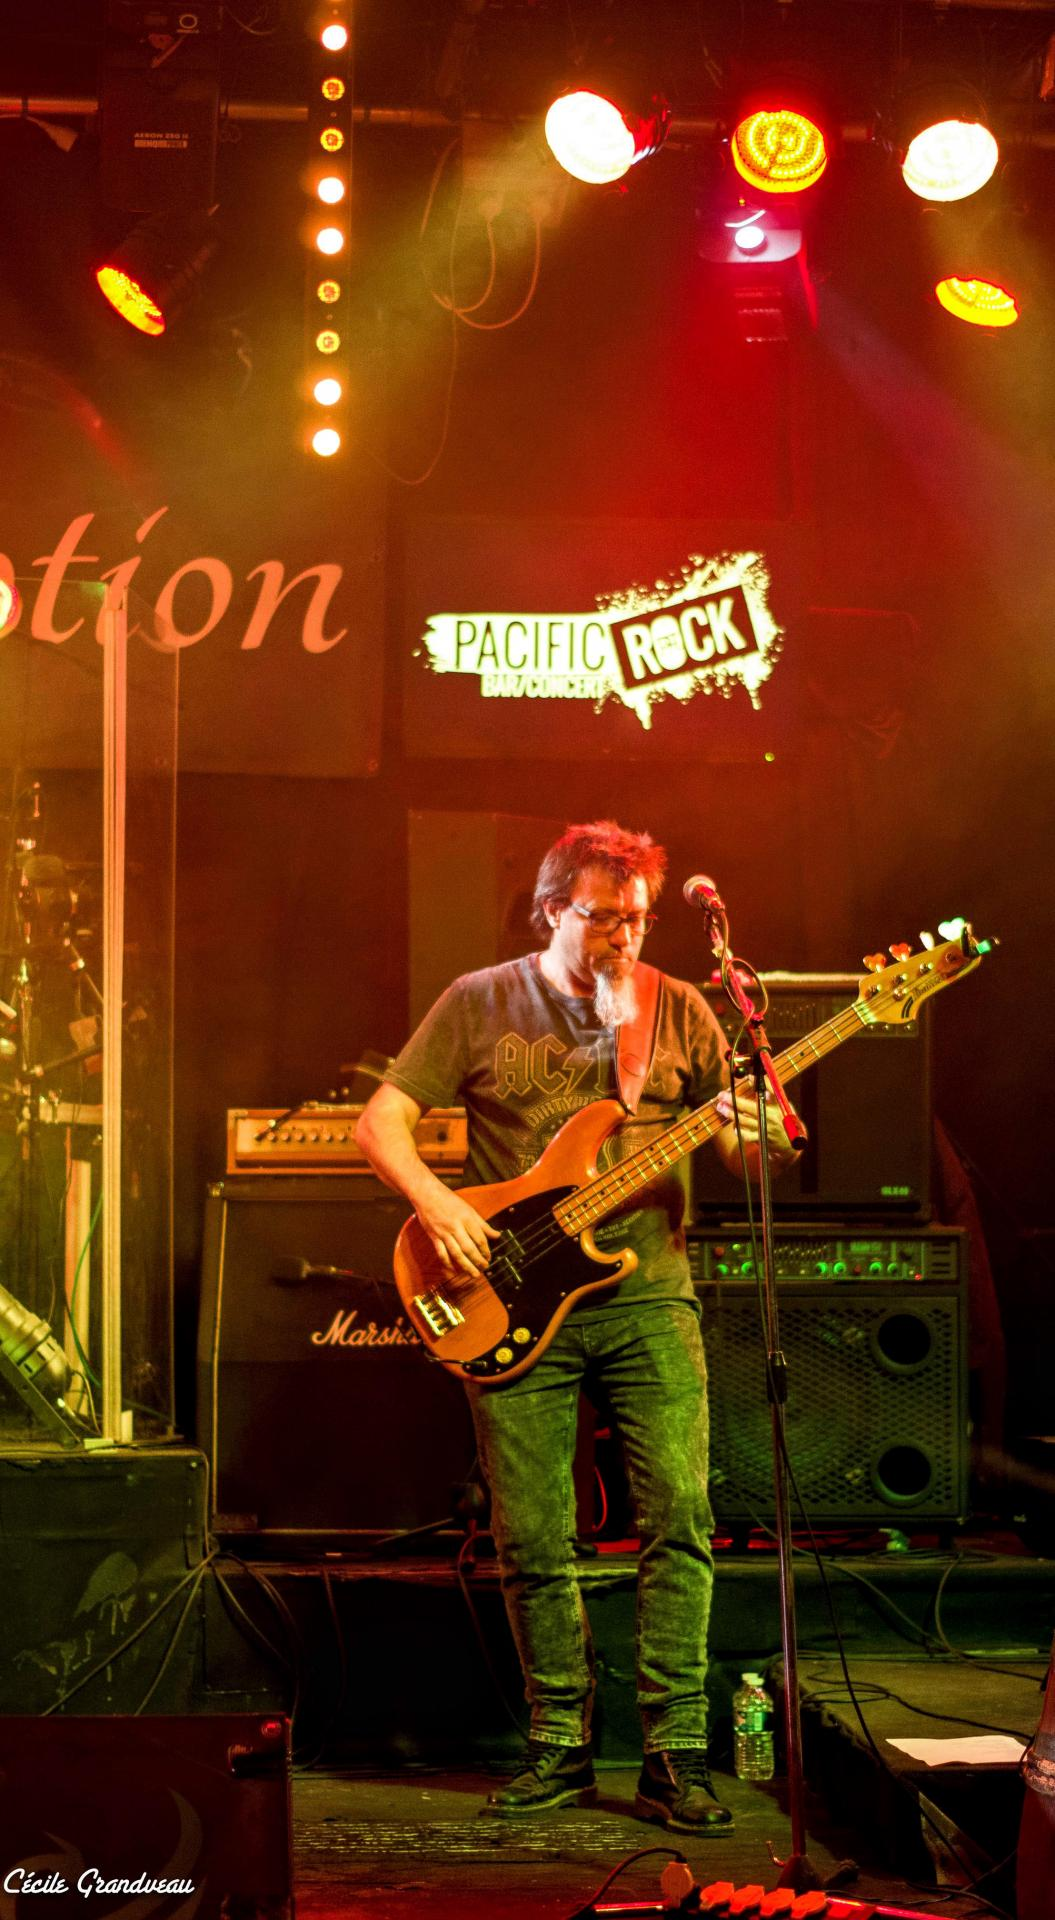 Resumption - Pacific Rock - mars 2019